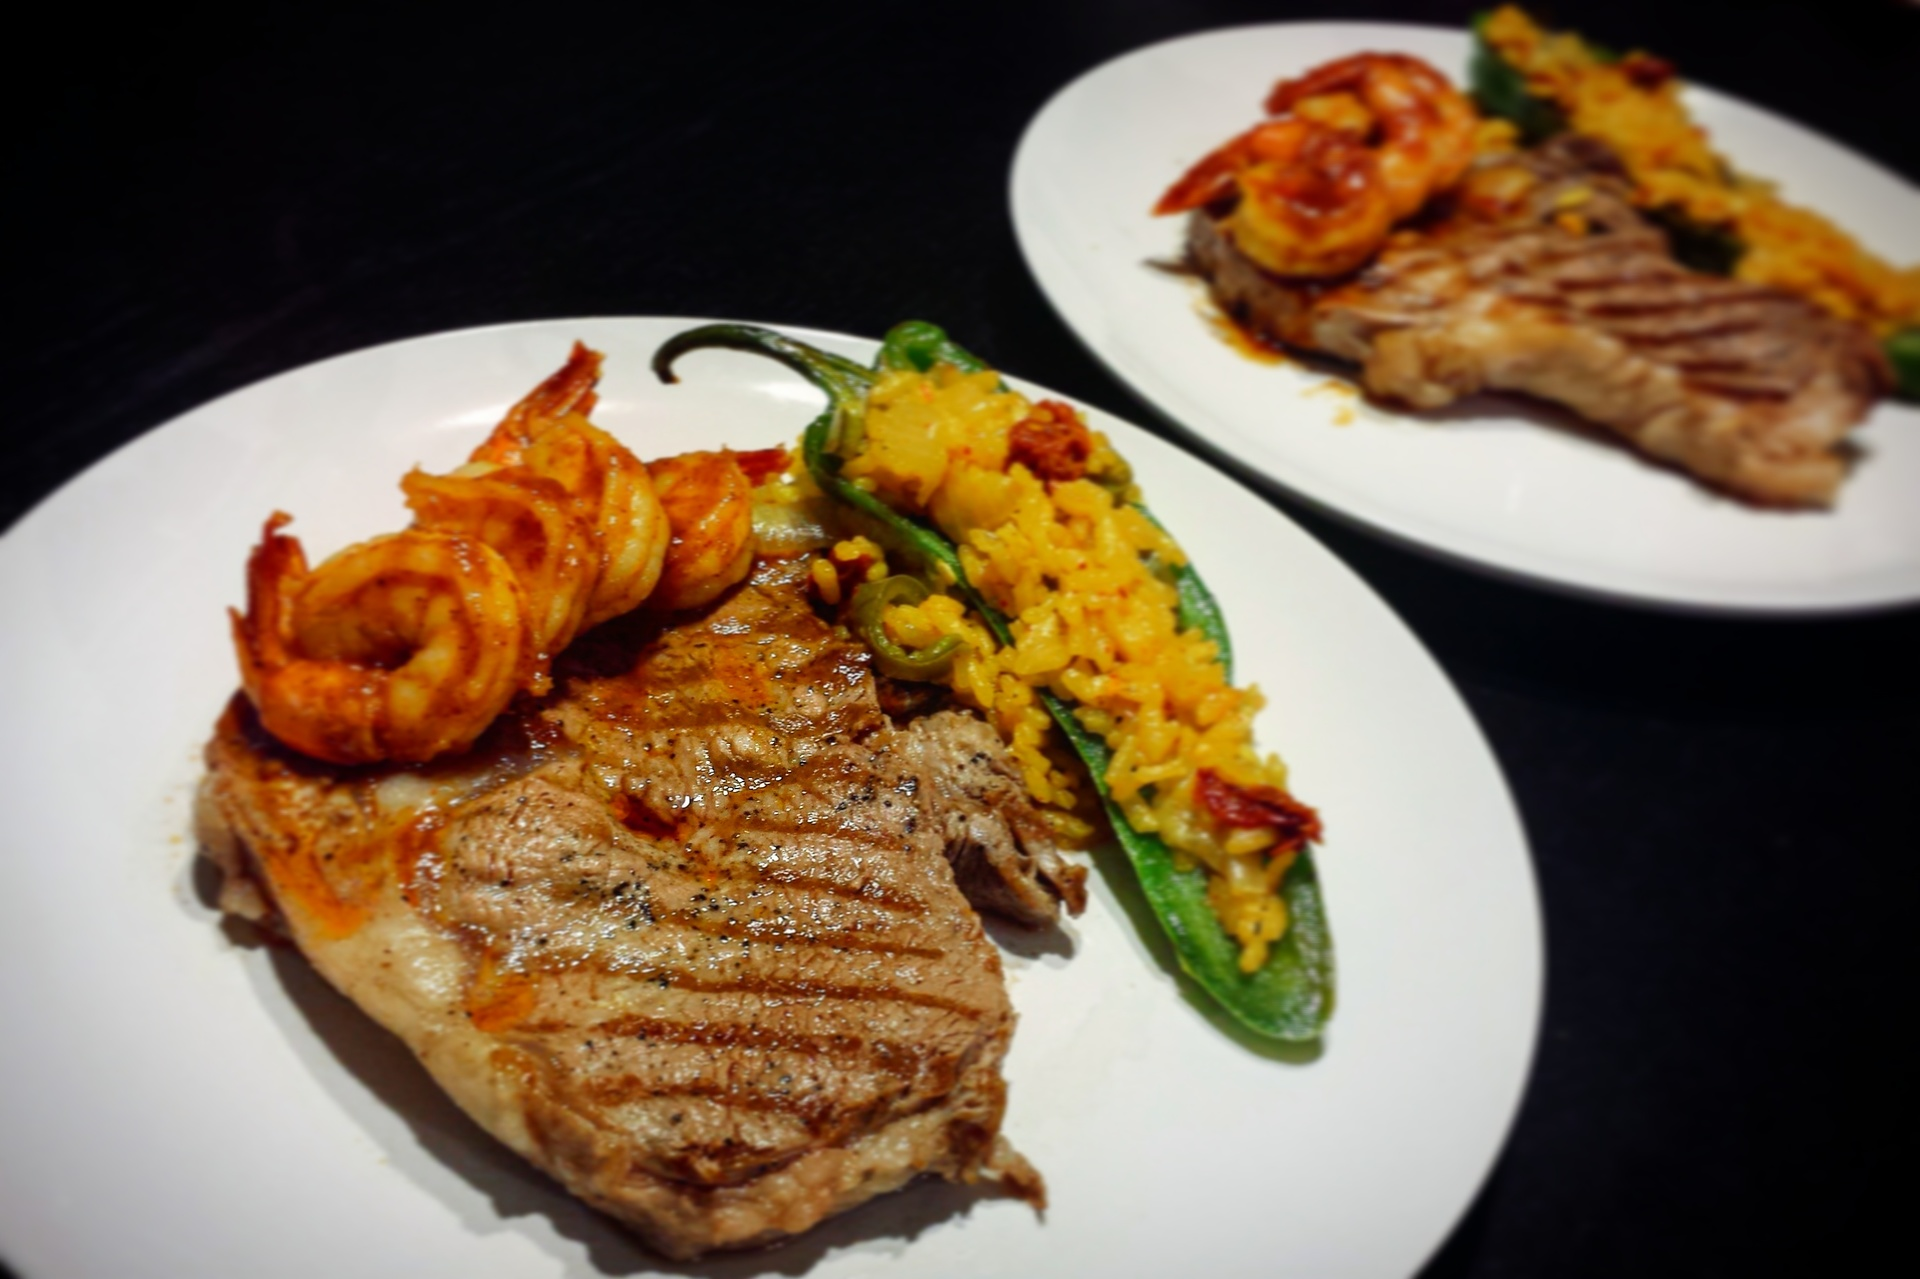 surf and turf with risotto stuffed chili